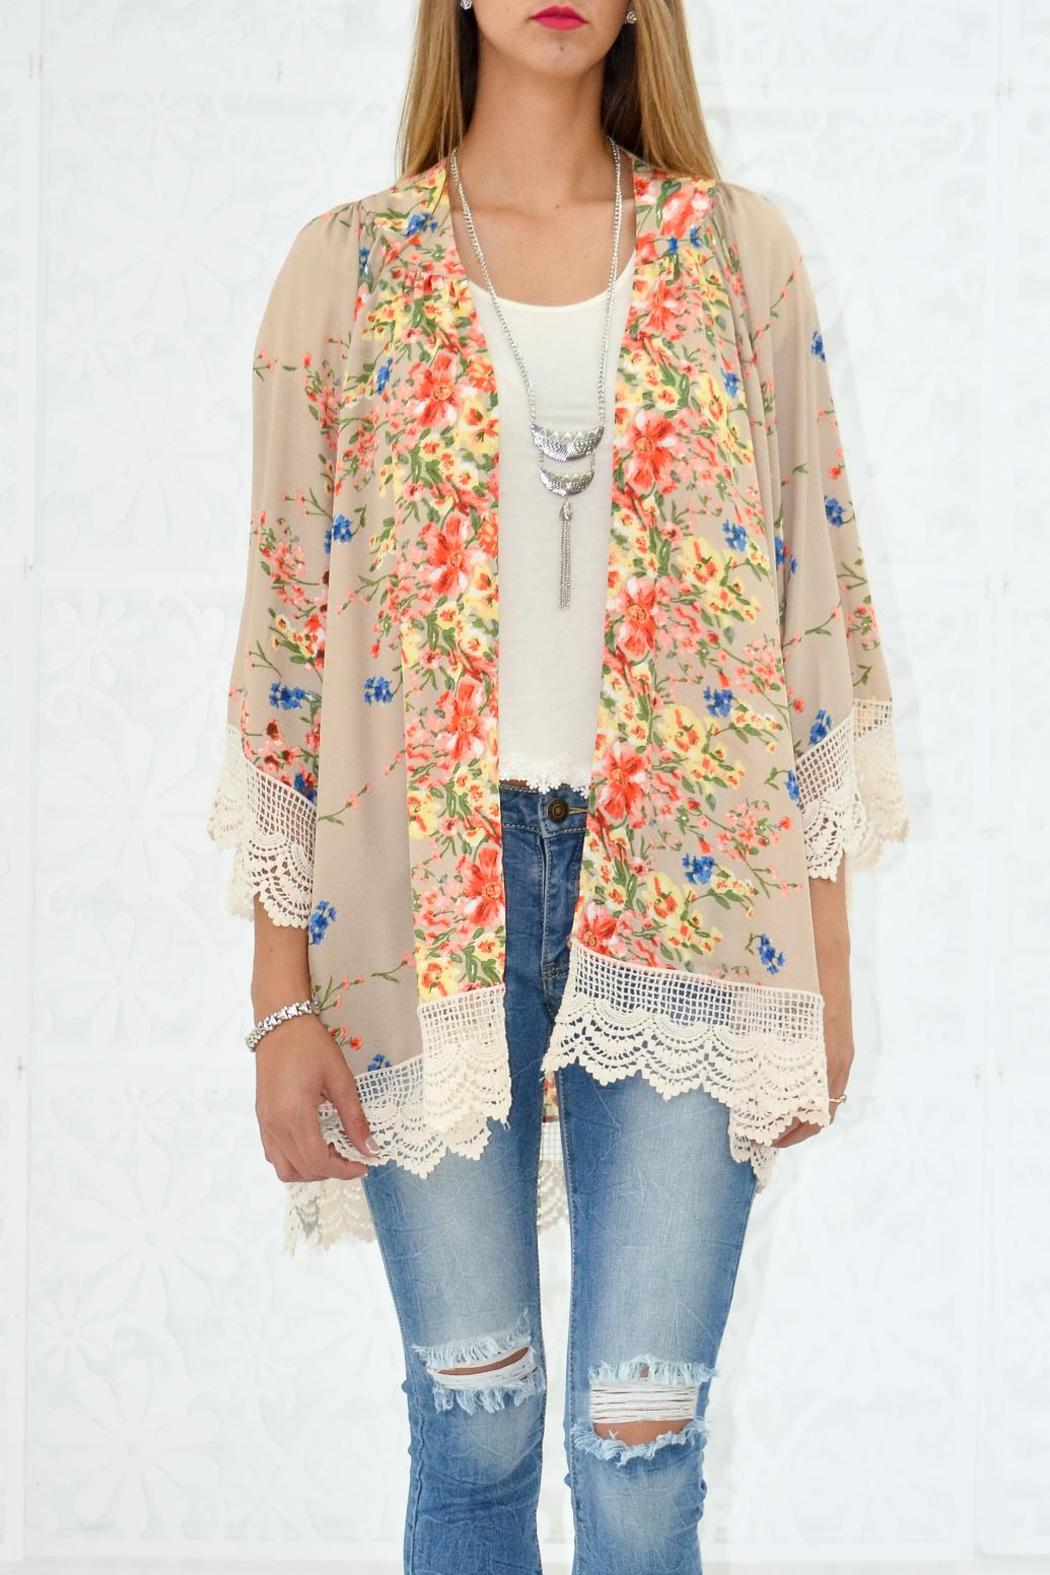 558b70dd279e Umgee USA Floral Kimono from Utah by My Sister's Closet Boutique ...